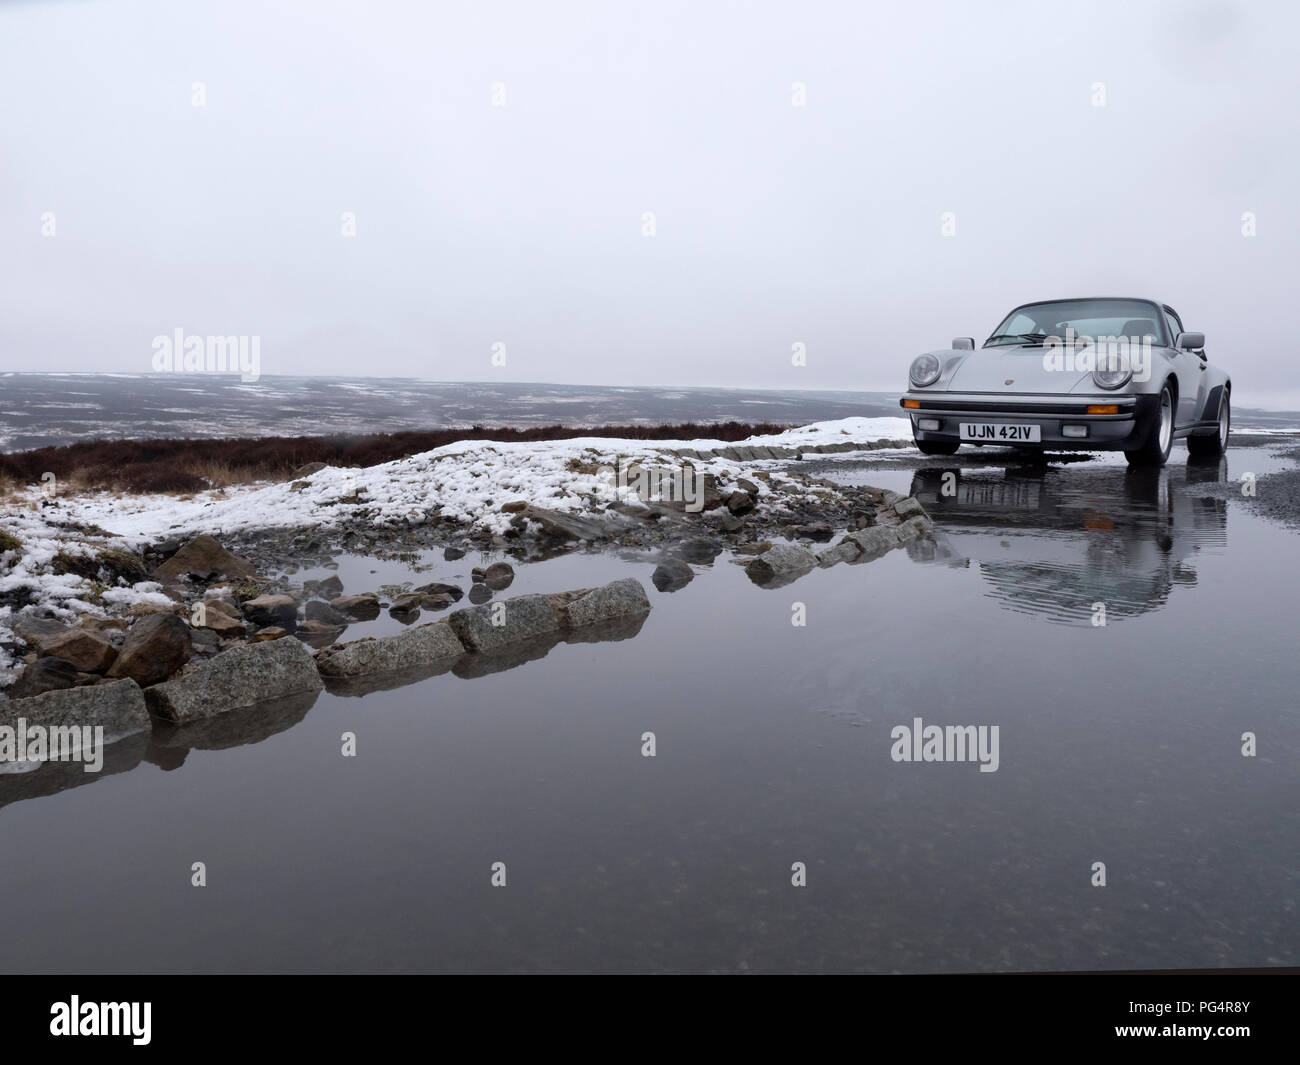 1979 Porsche 911 Turbo. North York Moors UK - Stock Image